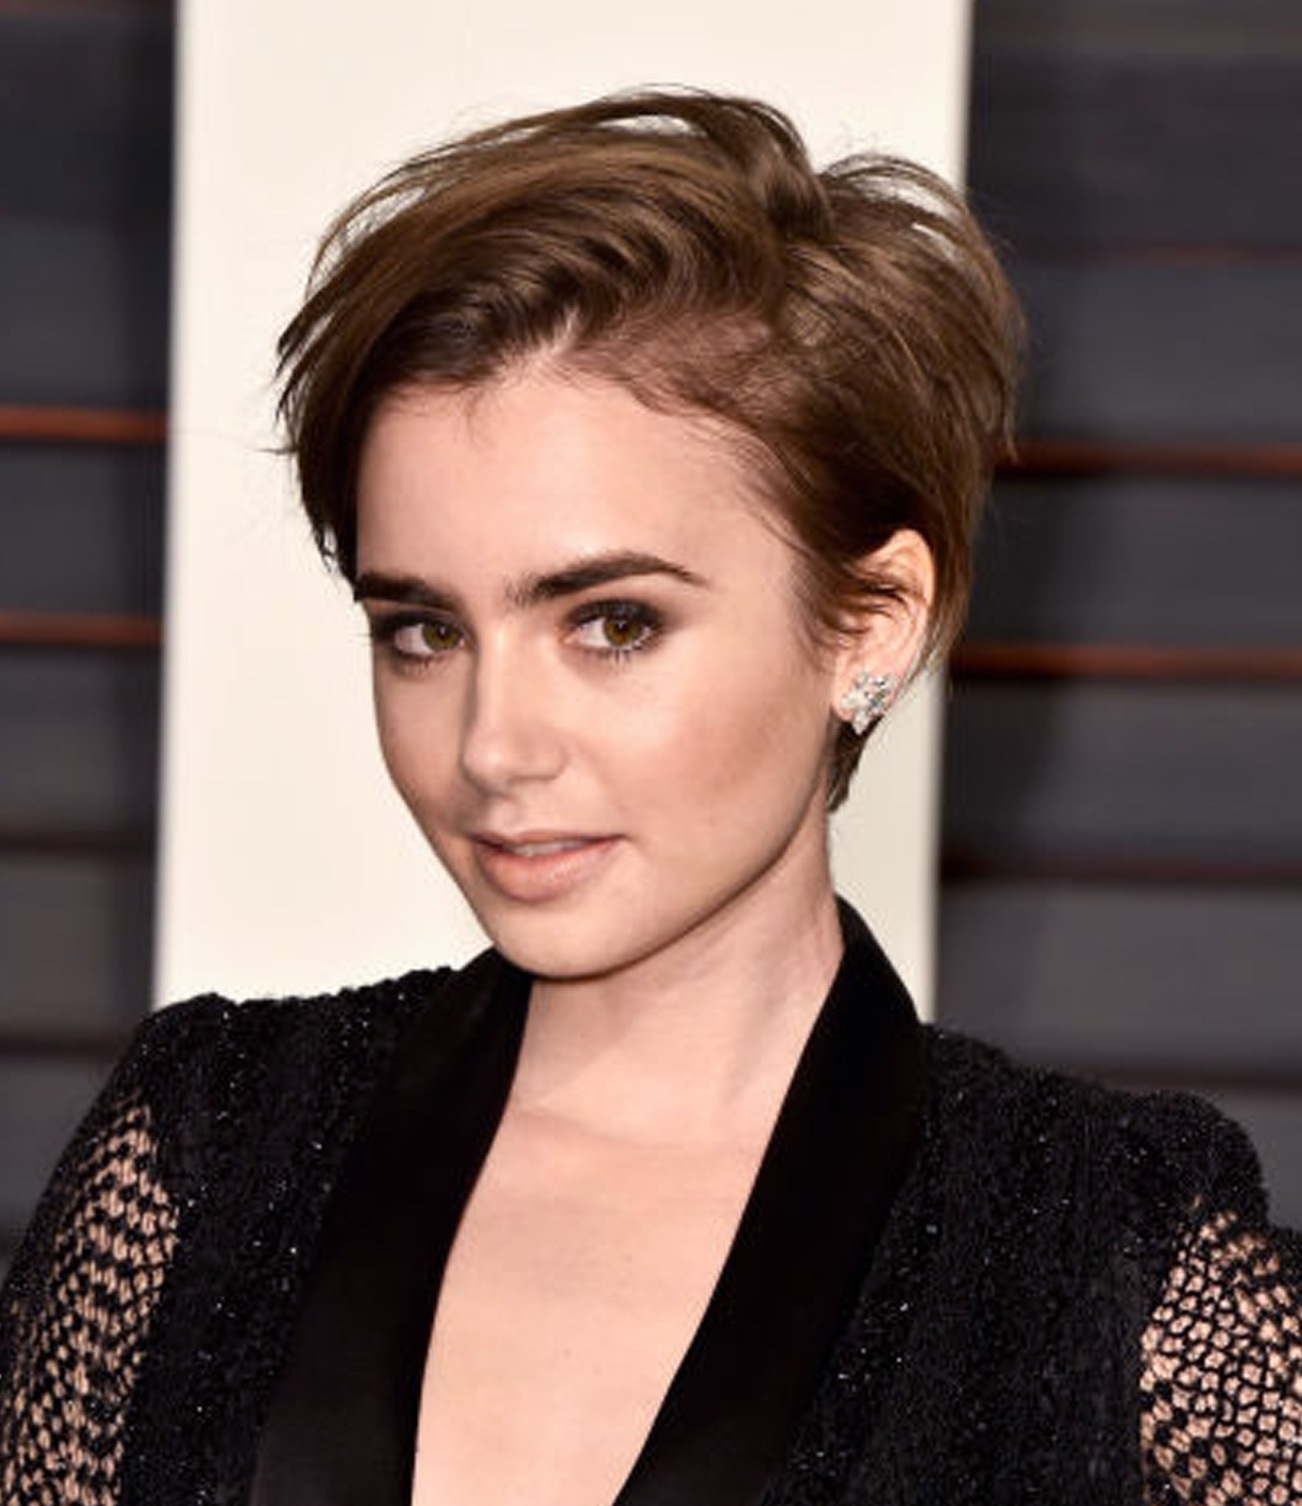 Unique Short Hairstyles Girls Hairstyle Ideas